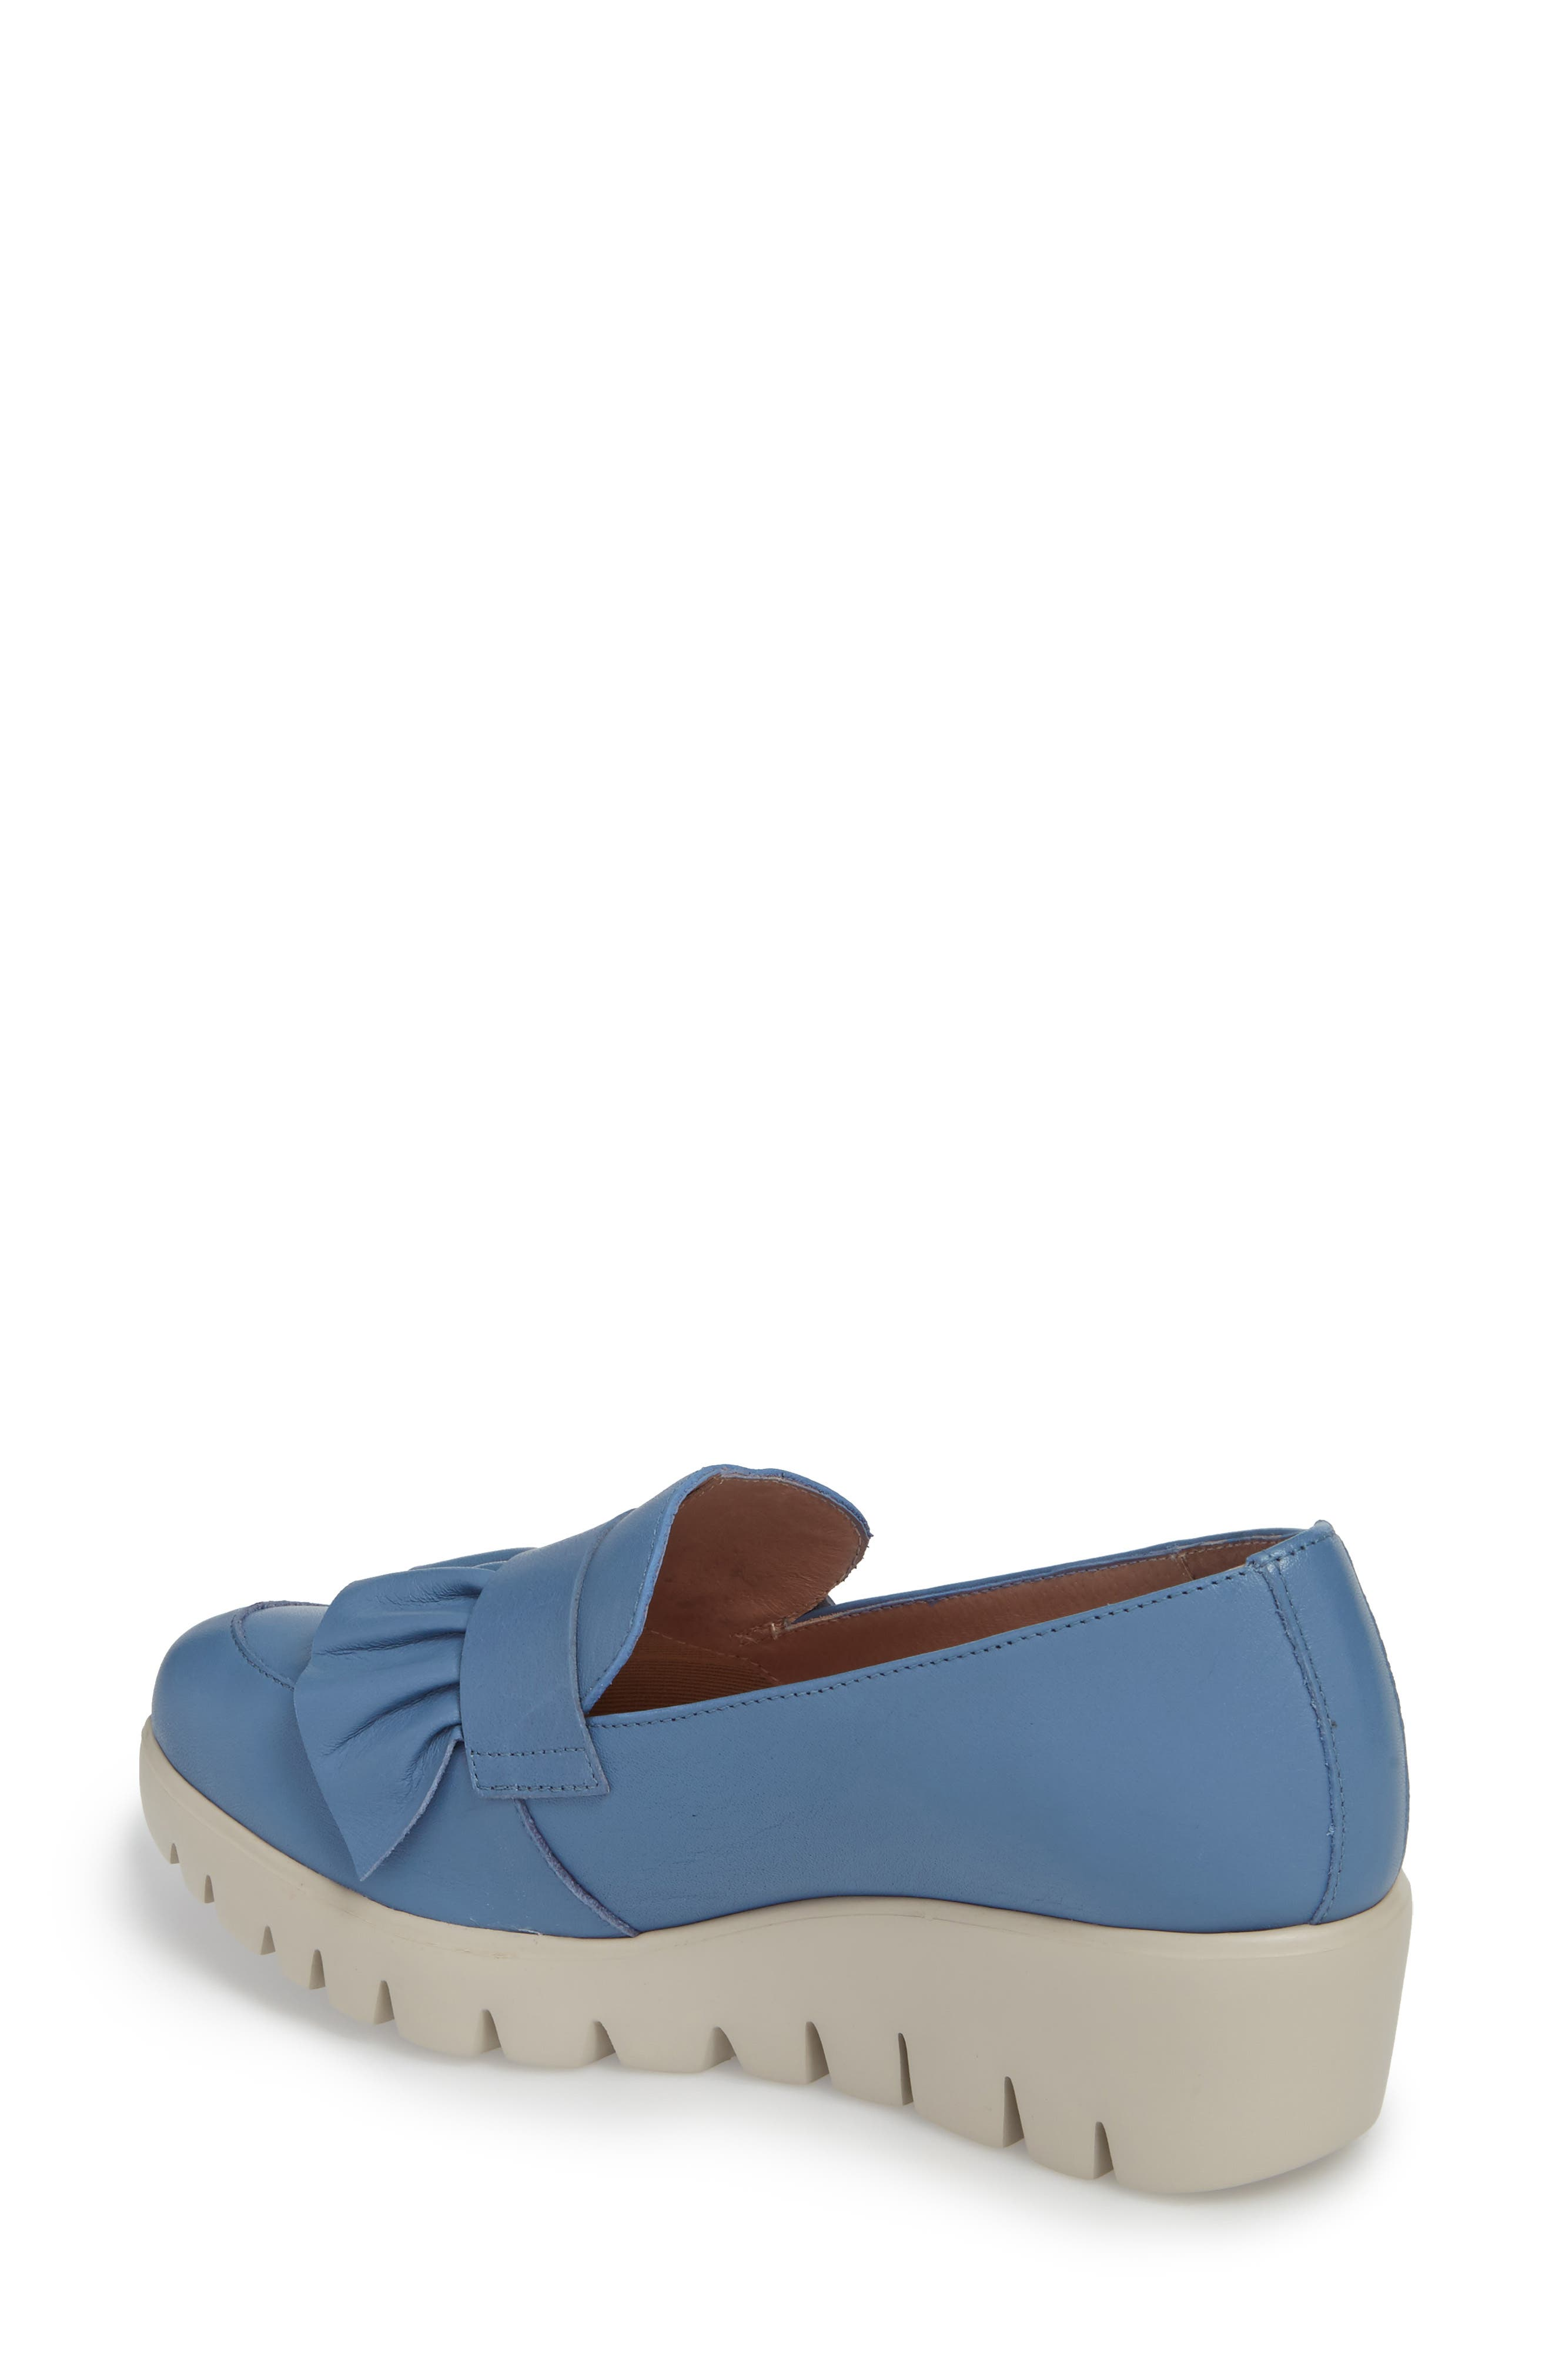 Loafer Wedge,                             Alternate thumbnail 2, color,                             Jeans Leather